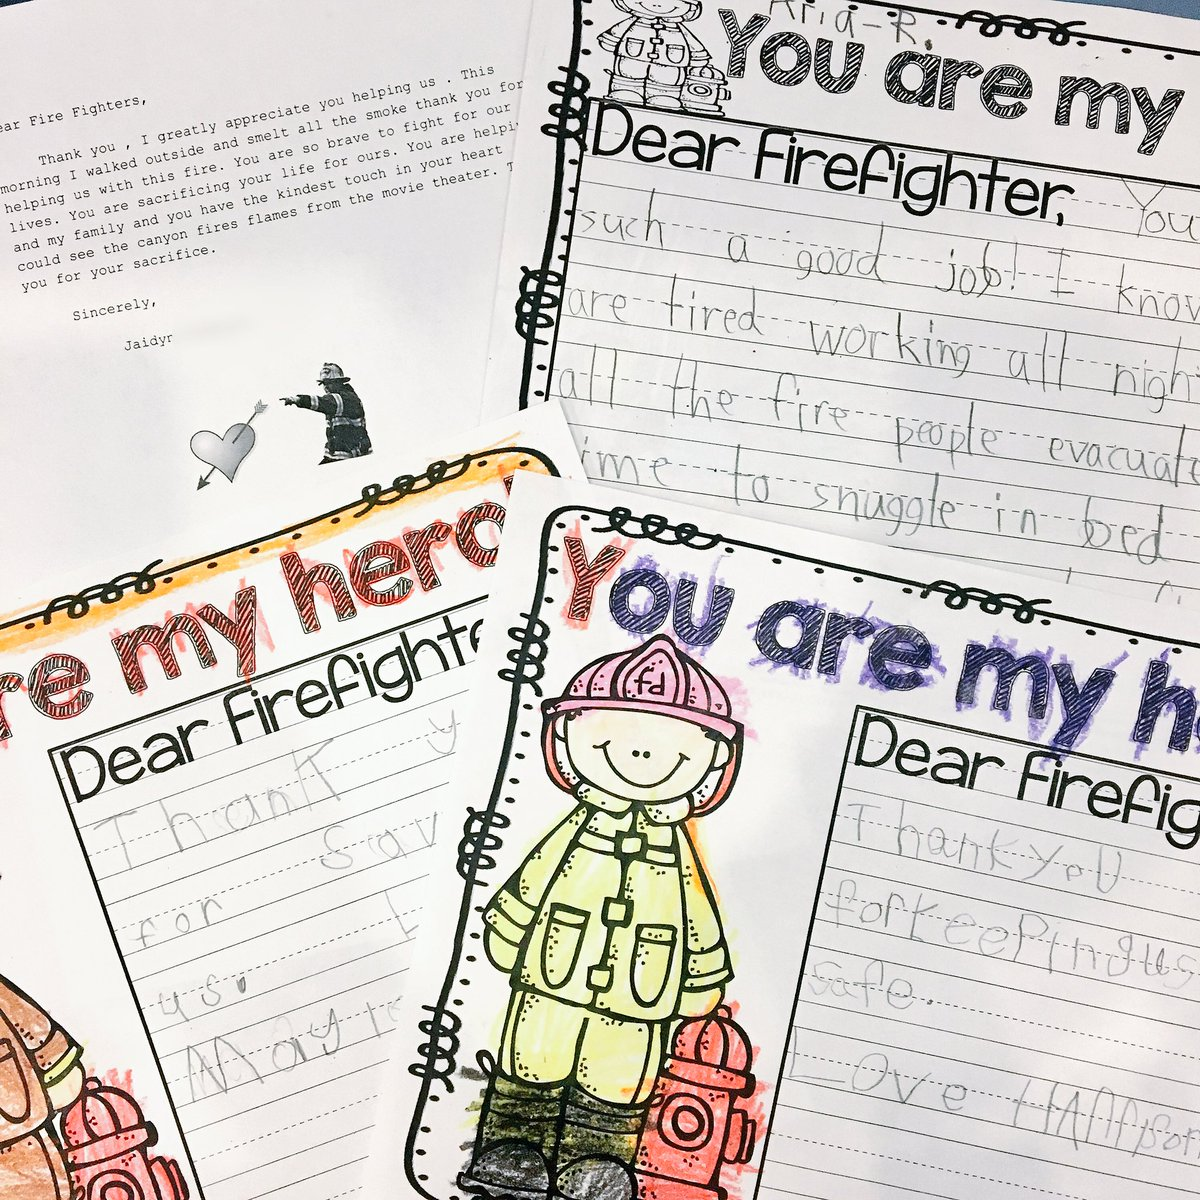 Ama elementary on twitter today our school wrote thank you ama elementary on twitter today our school wrote thank you letters for the fire fighters working hard to keep us safe canyonfire amaelementary aljukfo Choice Image